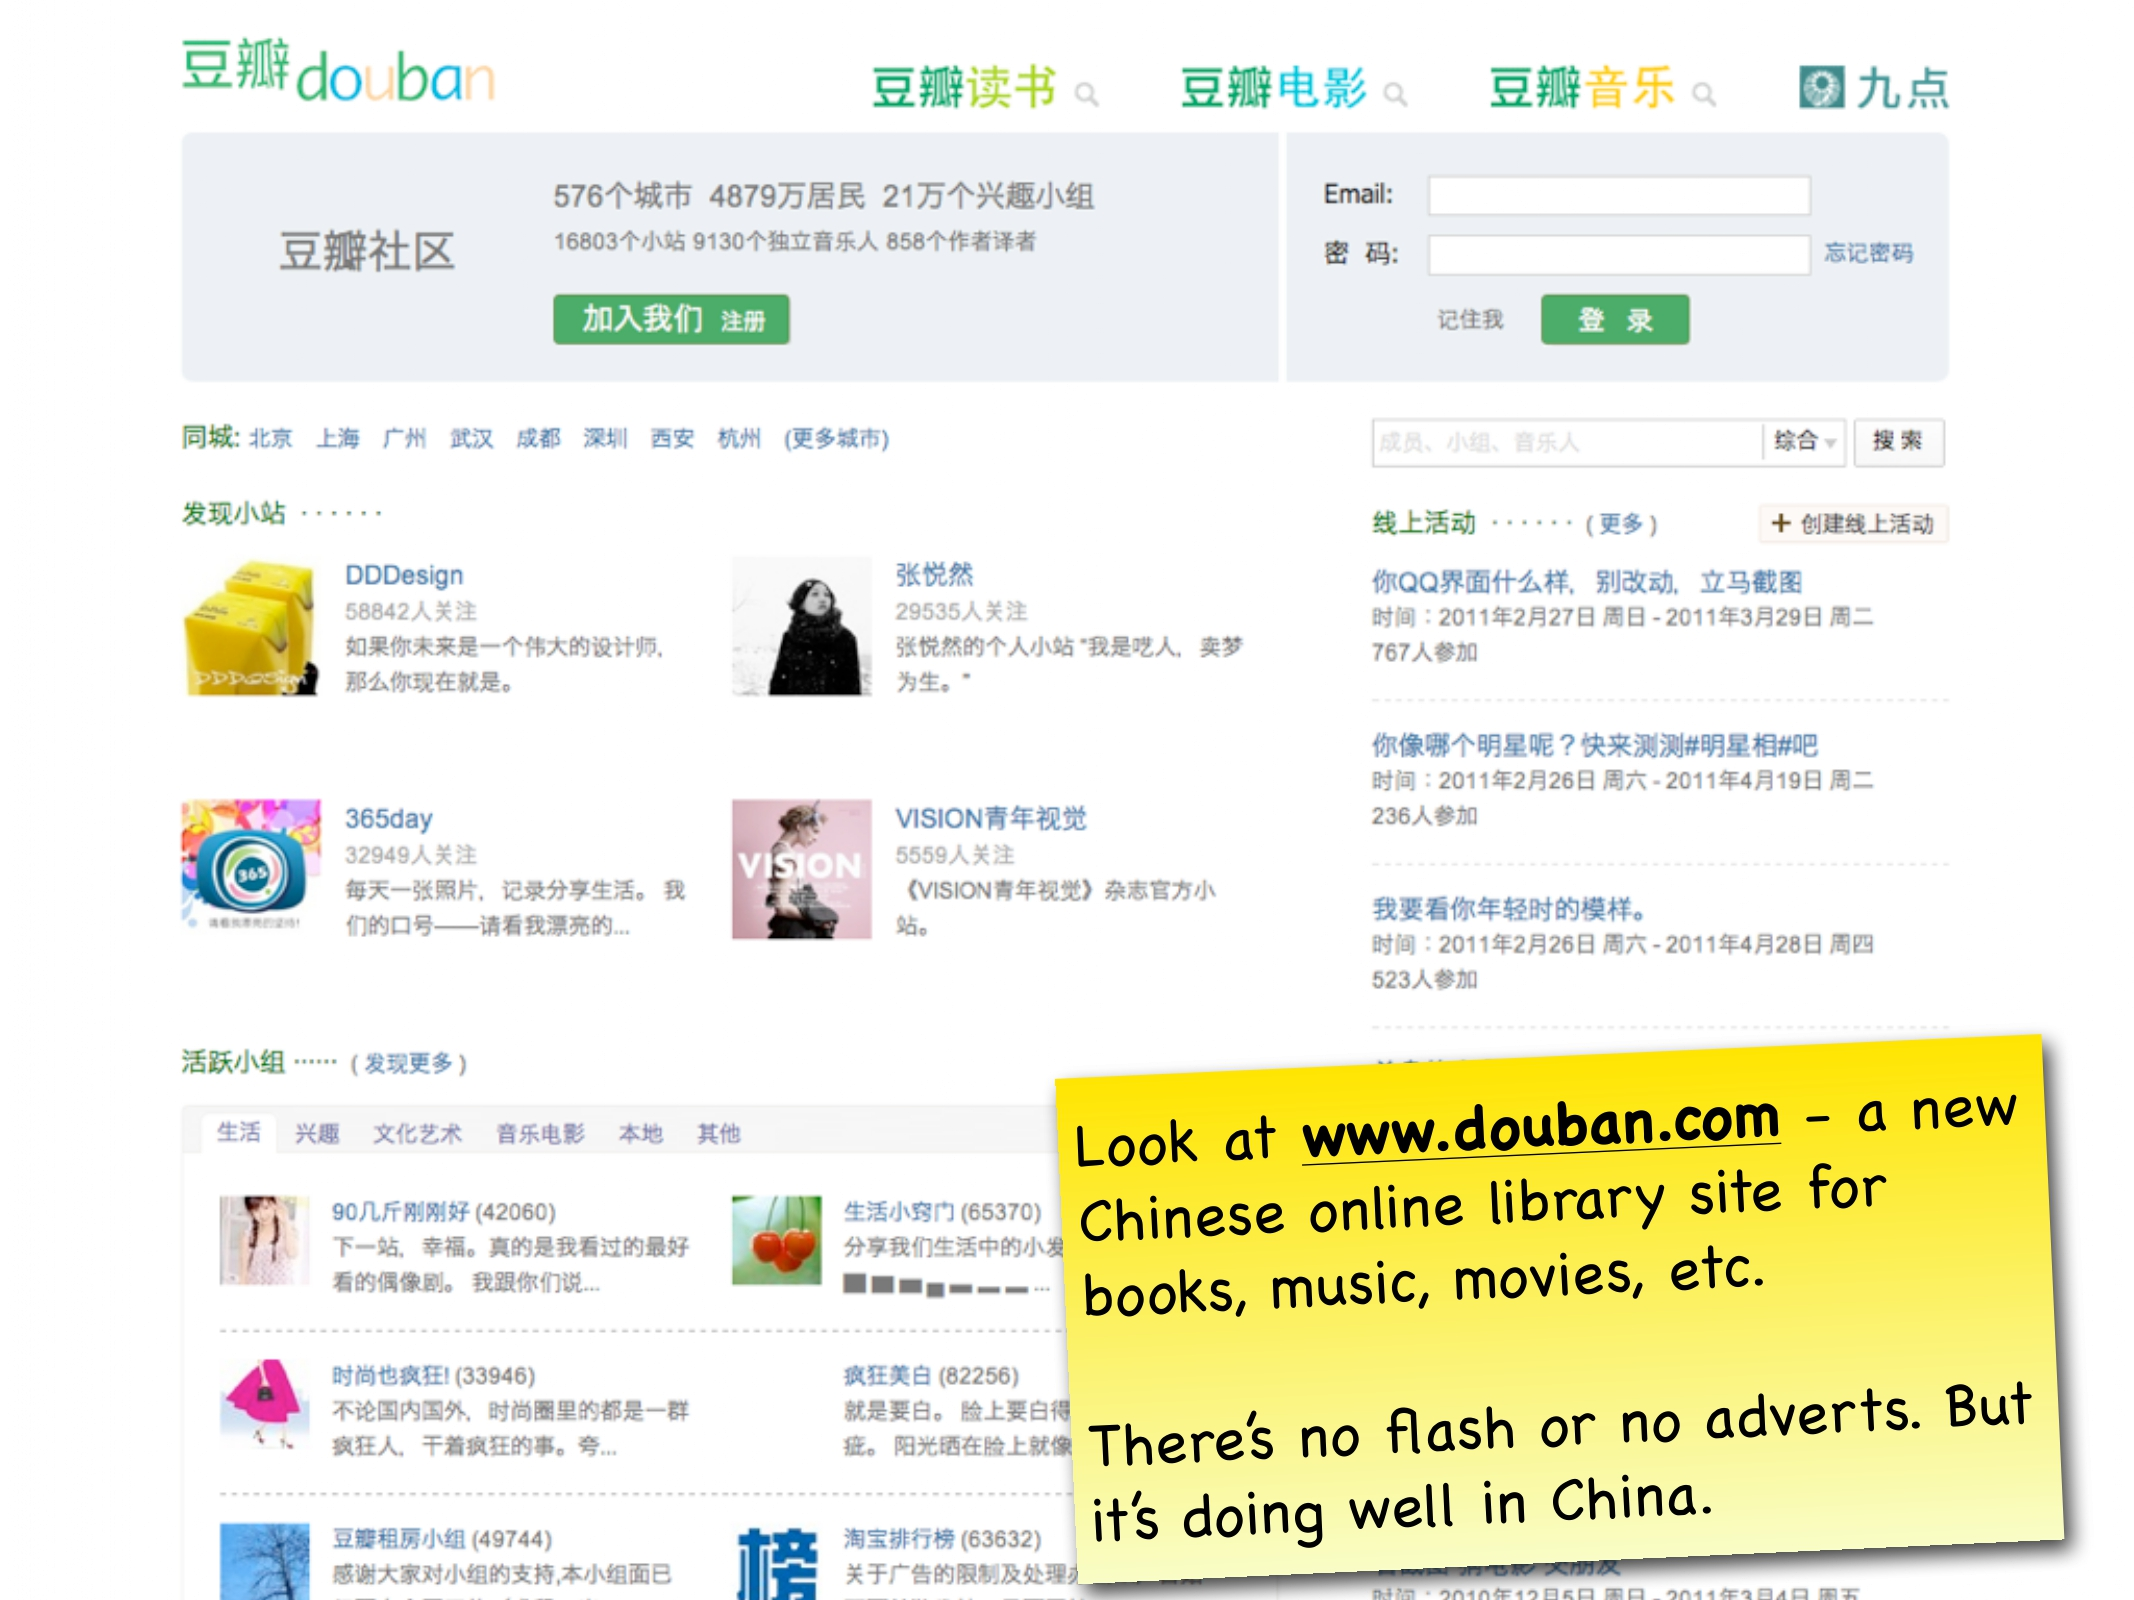 Chinese Web Design Patterns 2011_pages-to-jpg-0036.jpg